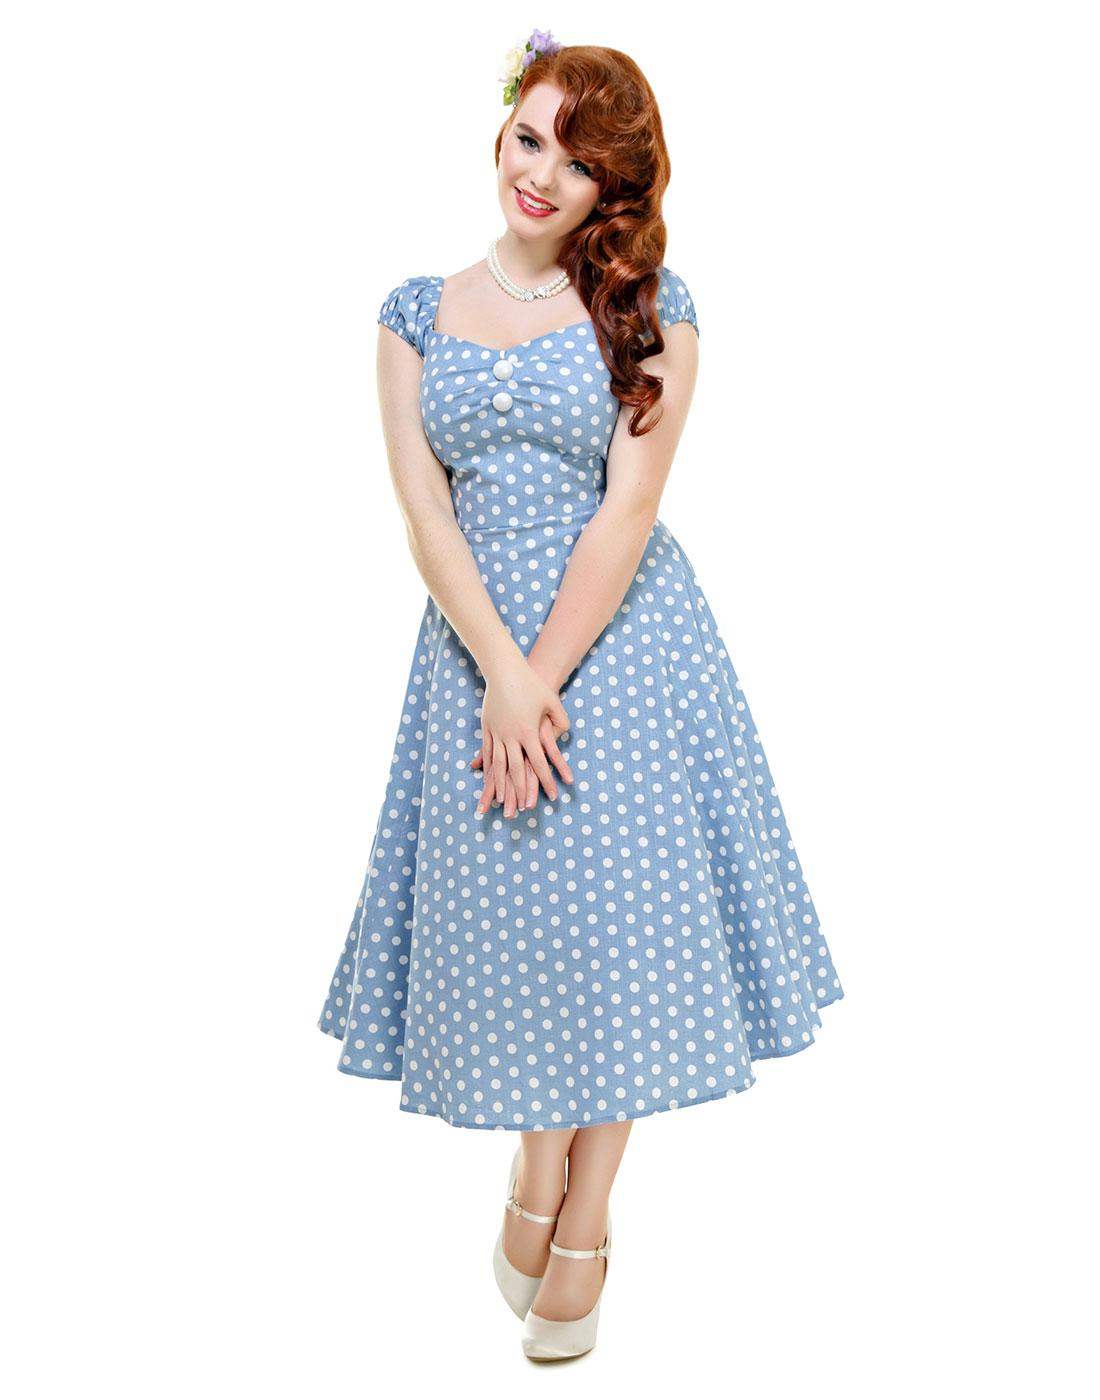 Dolores COLLECTIF Vintage Polka Dot Doll Dress